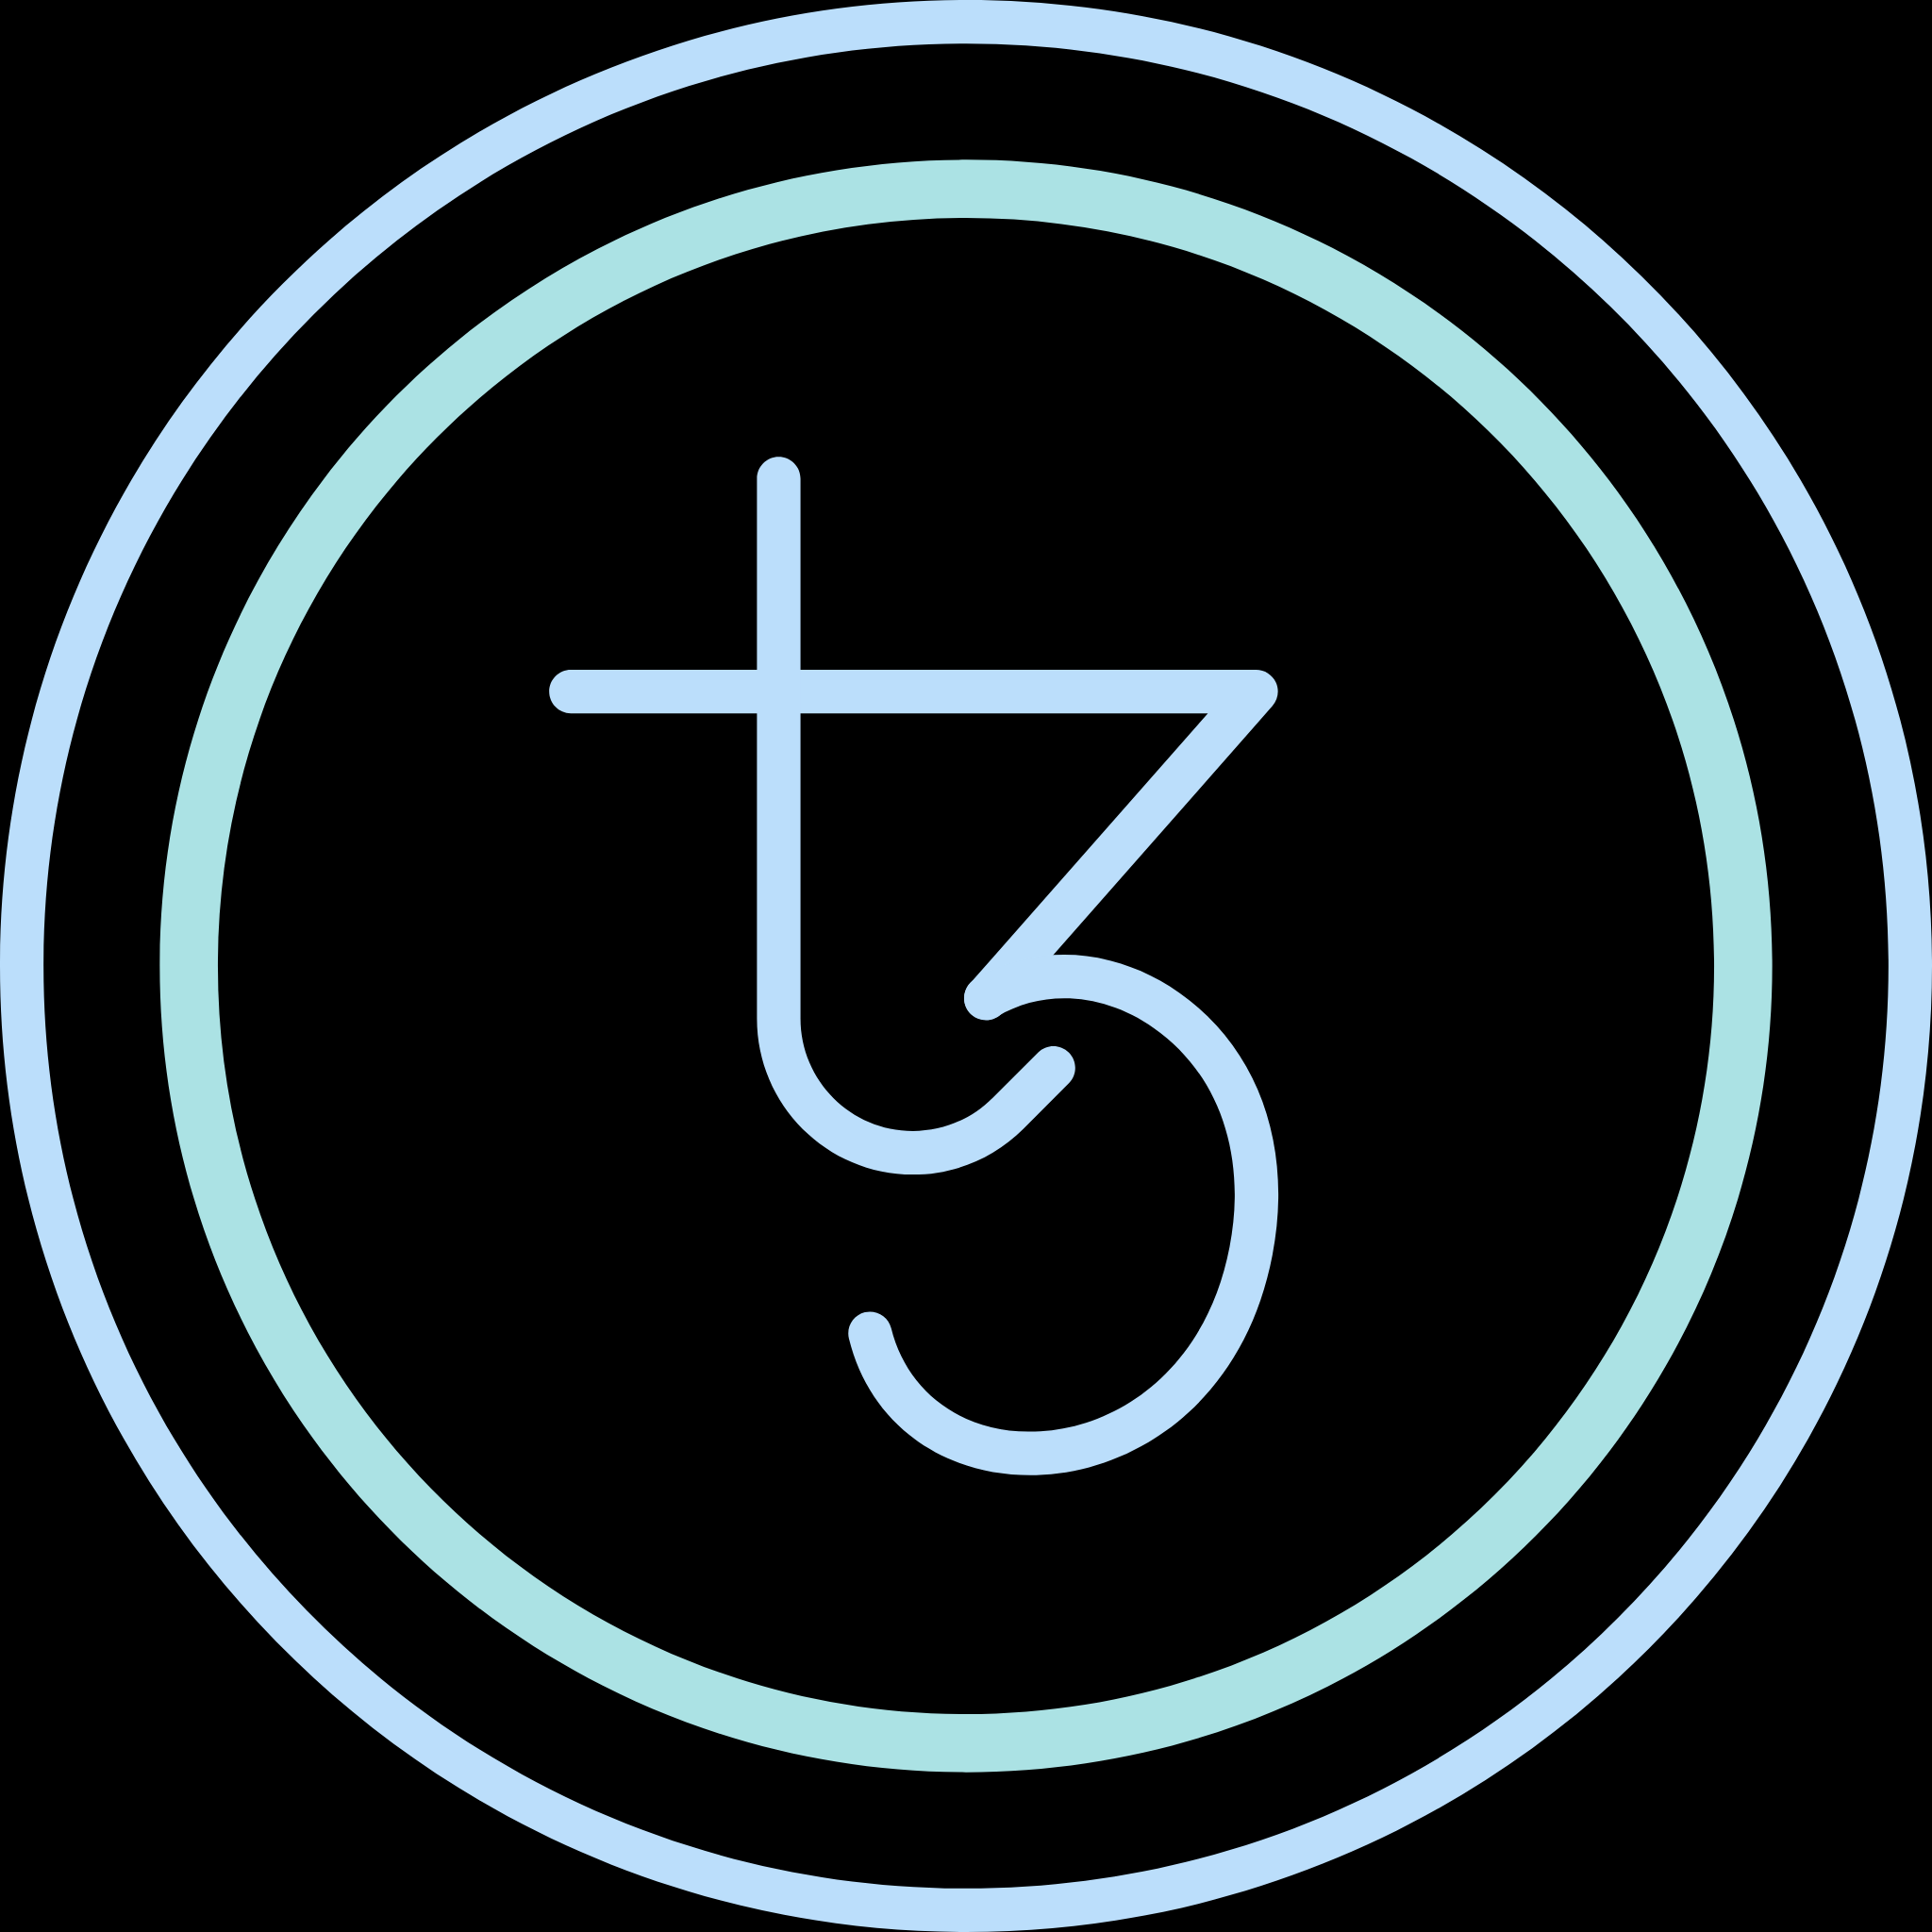 What would be the price of Tezos at the end of 2021 ?